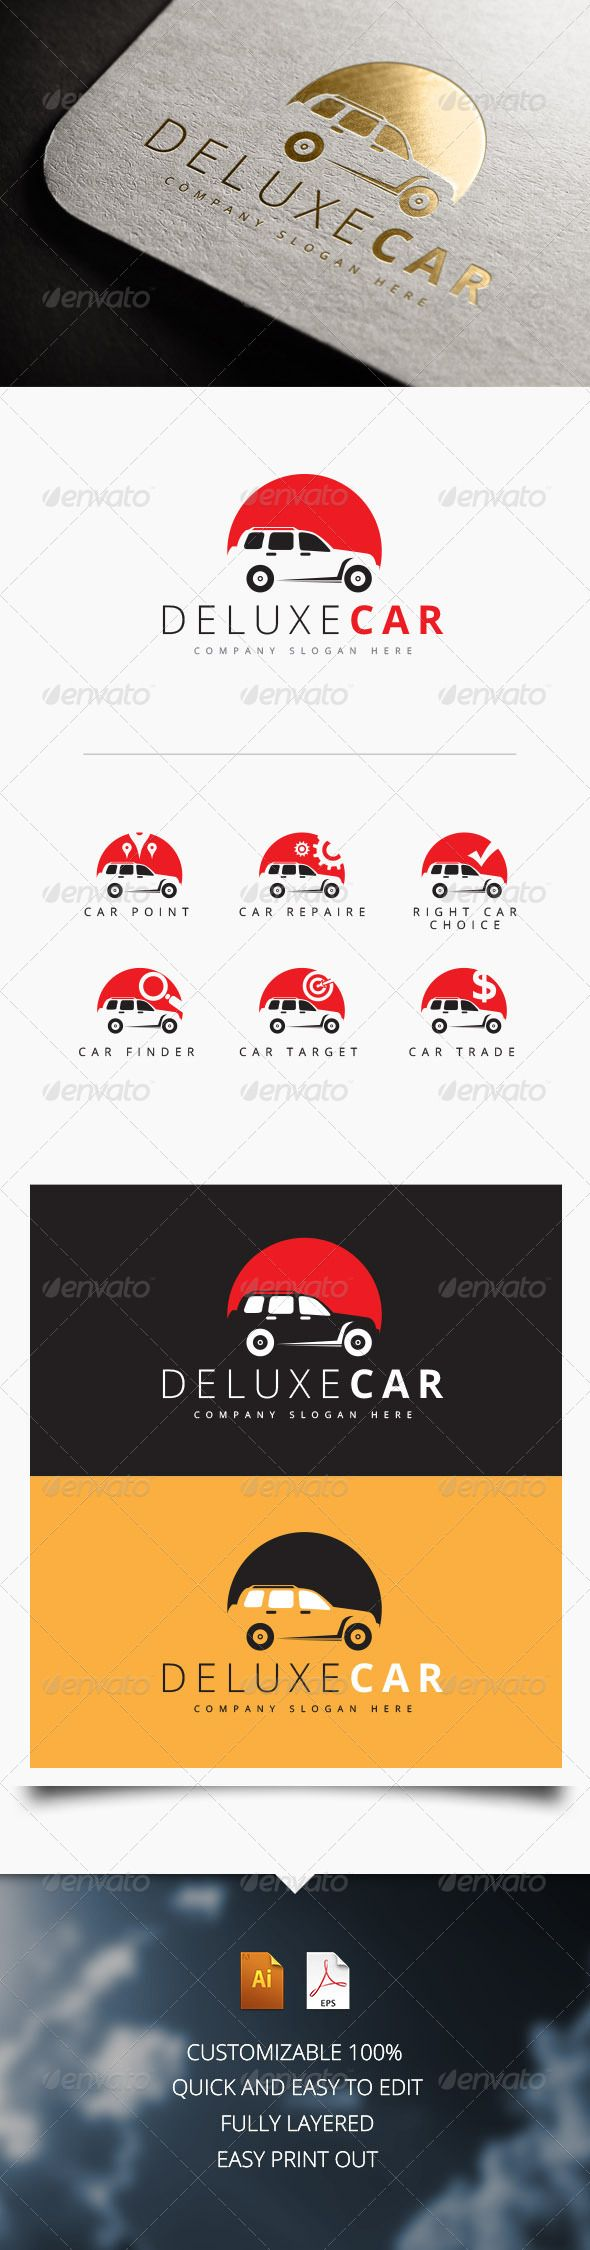 Deluxe Car Logo ...  auto, automobile, blue, brand, brand logo, branding, car, car logo, company logo, corporate, creative logo, dealer, design, green, lines, logo, mechanic, mock up logo, professional, red, service, sports, stationery